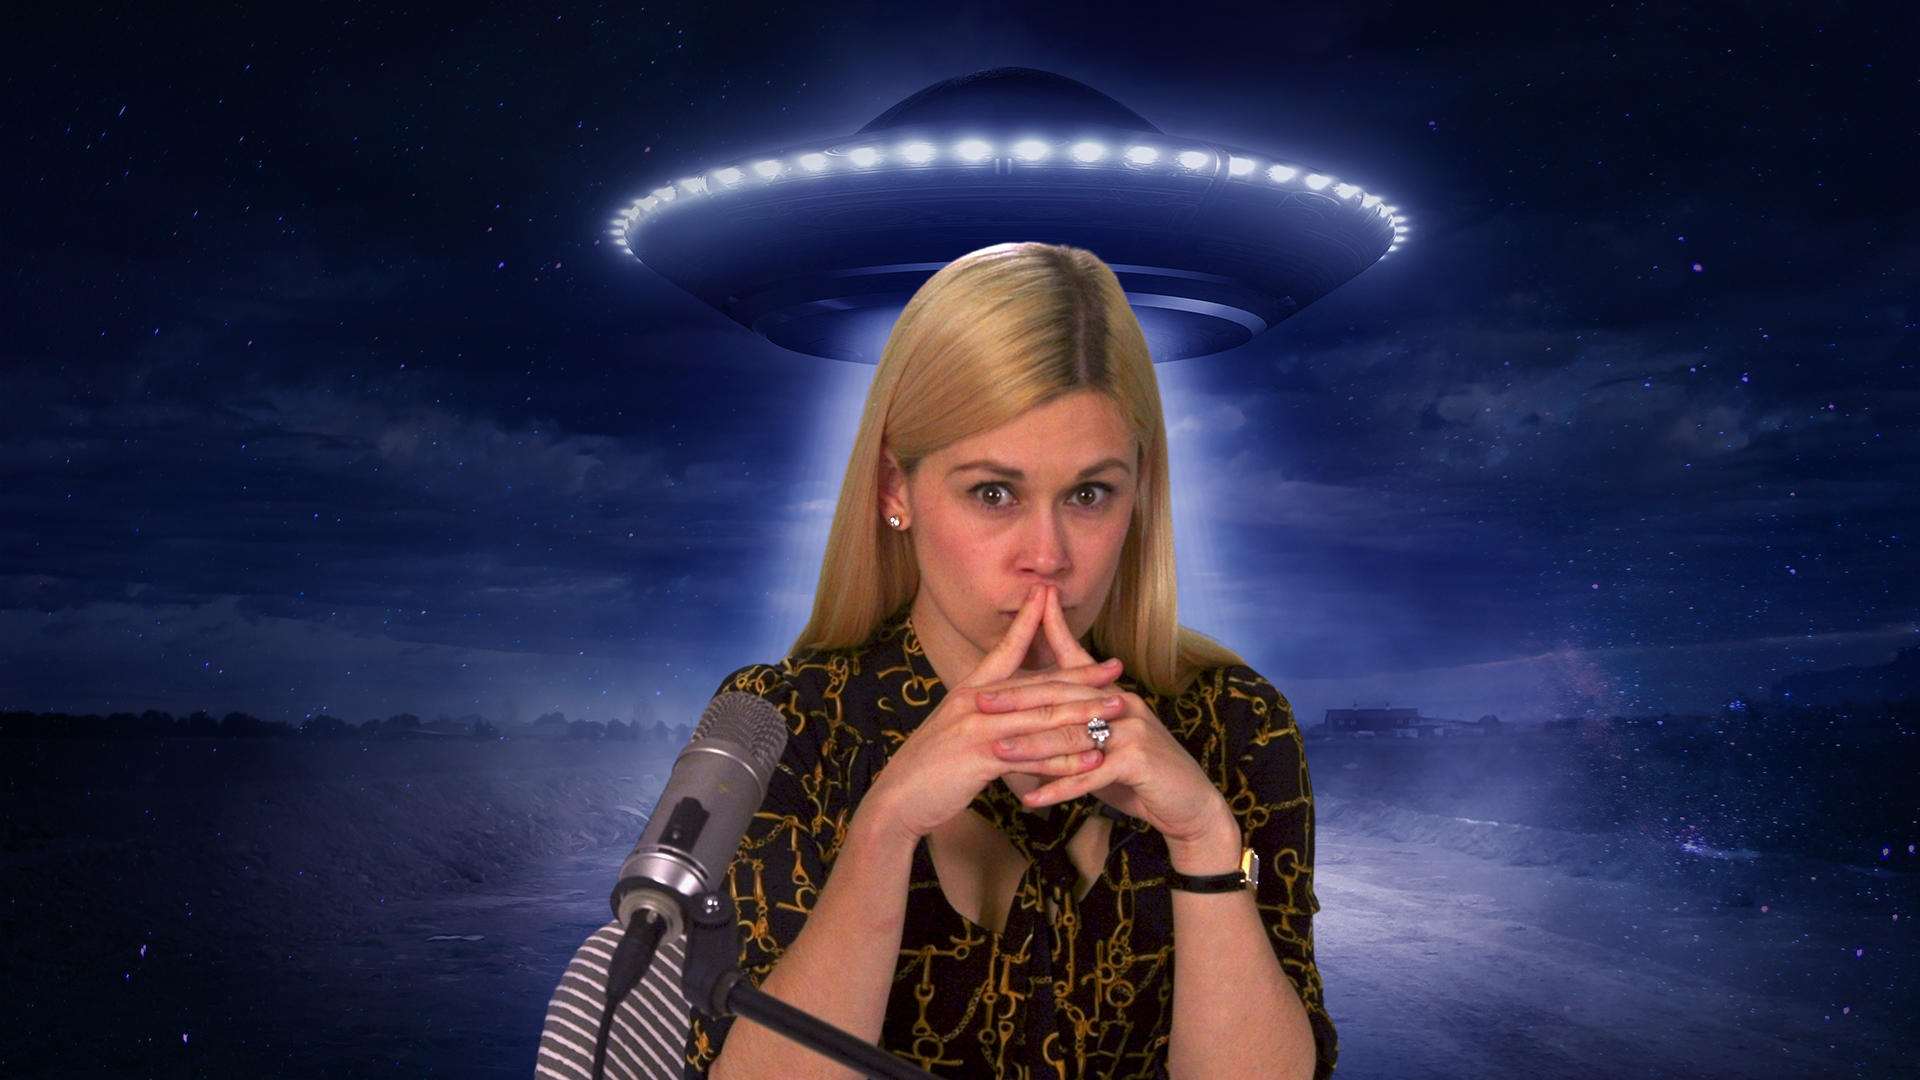 Video: Aliens and the search for extraterrestrial intelligence